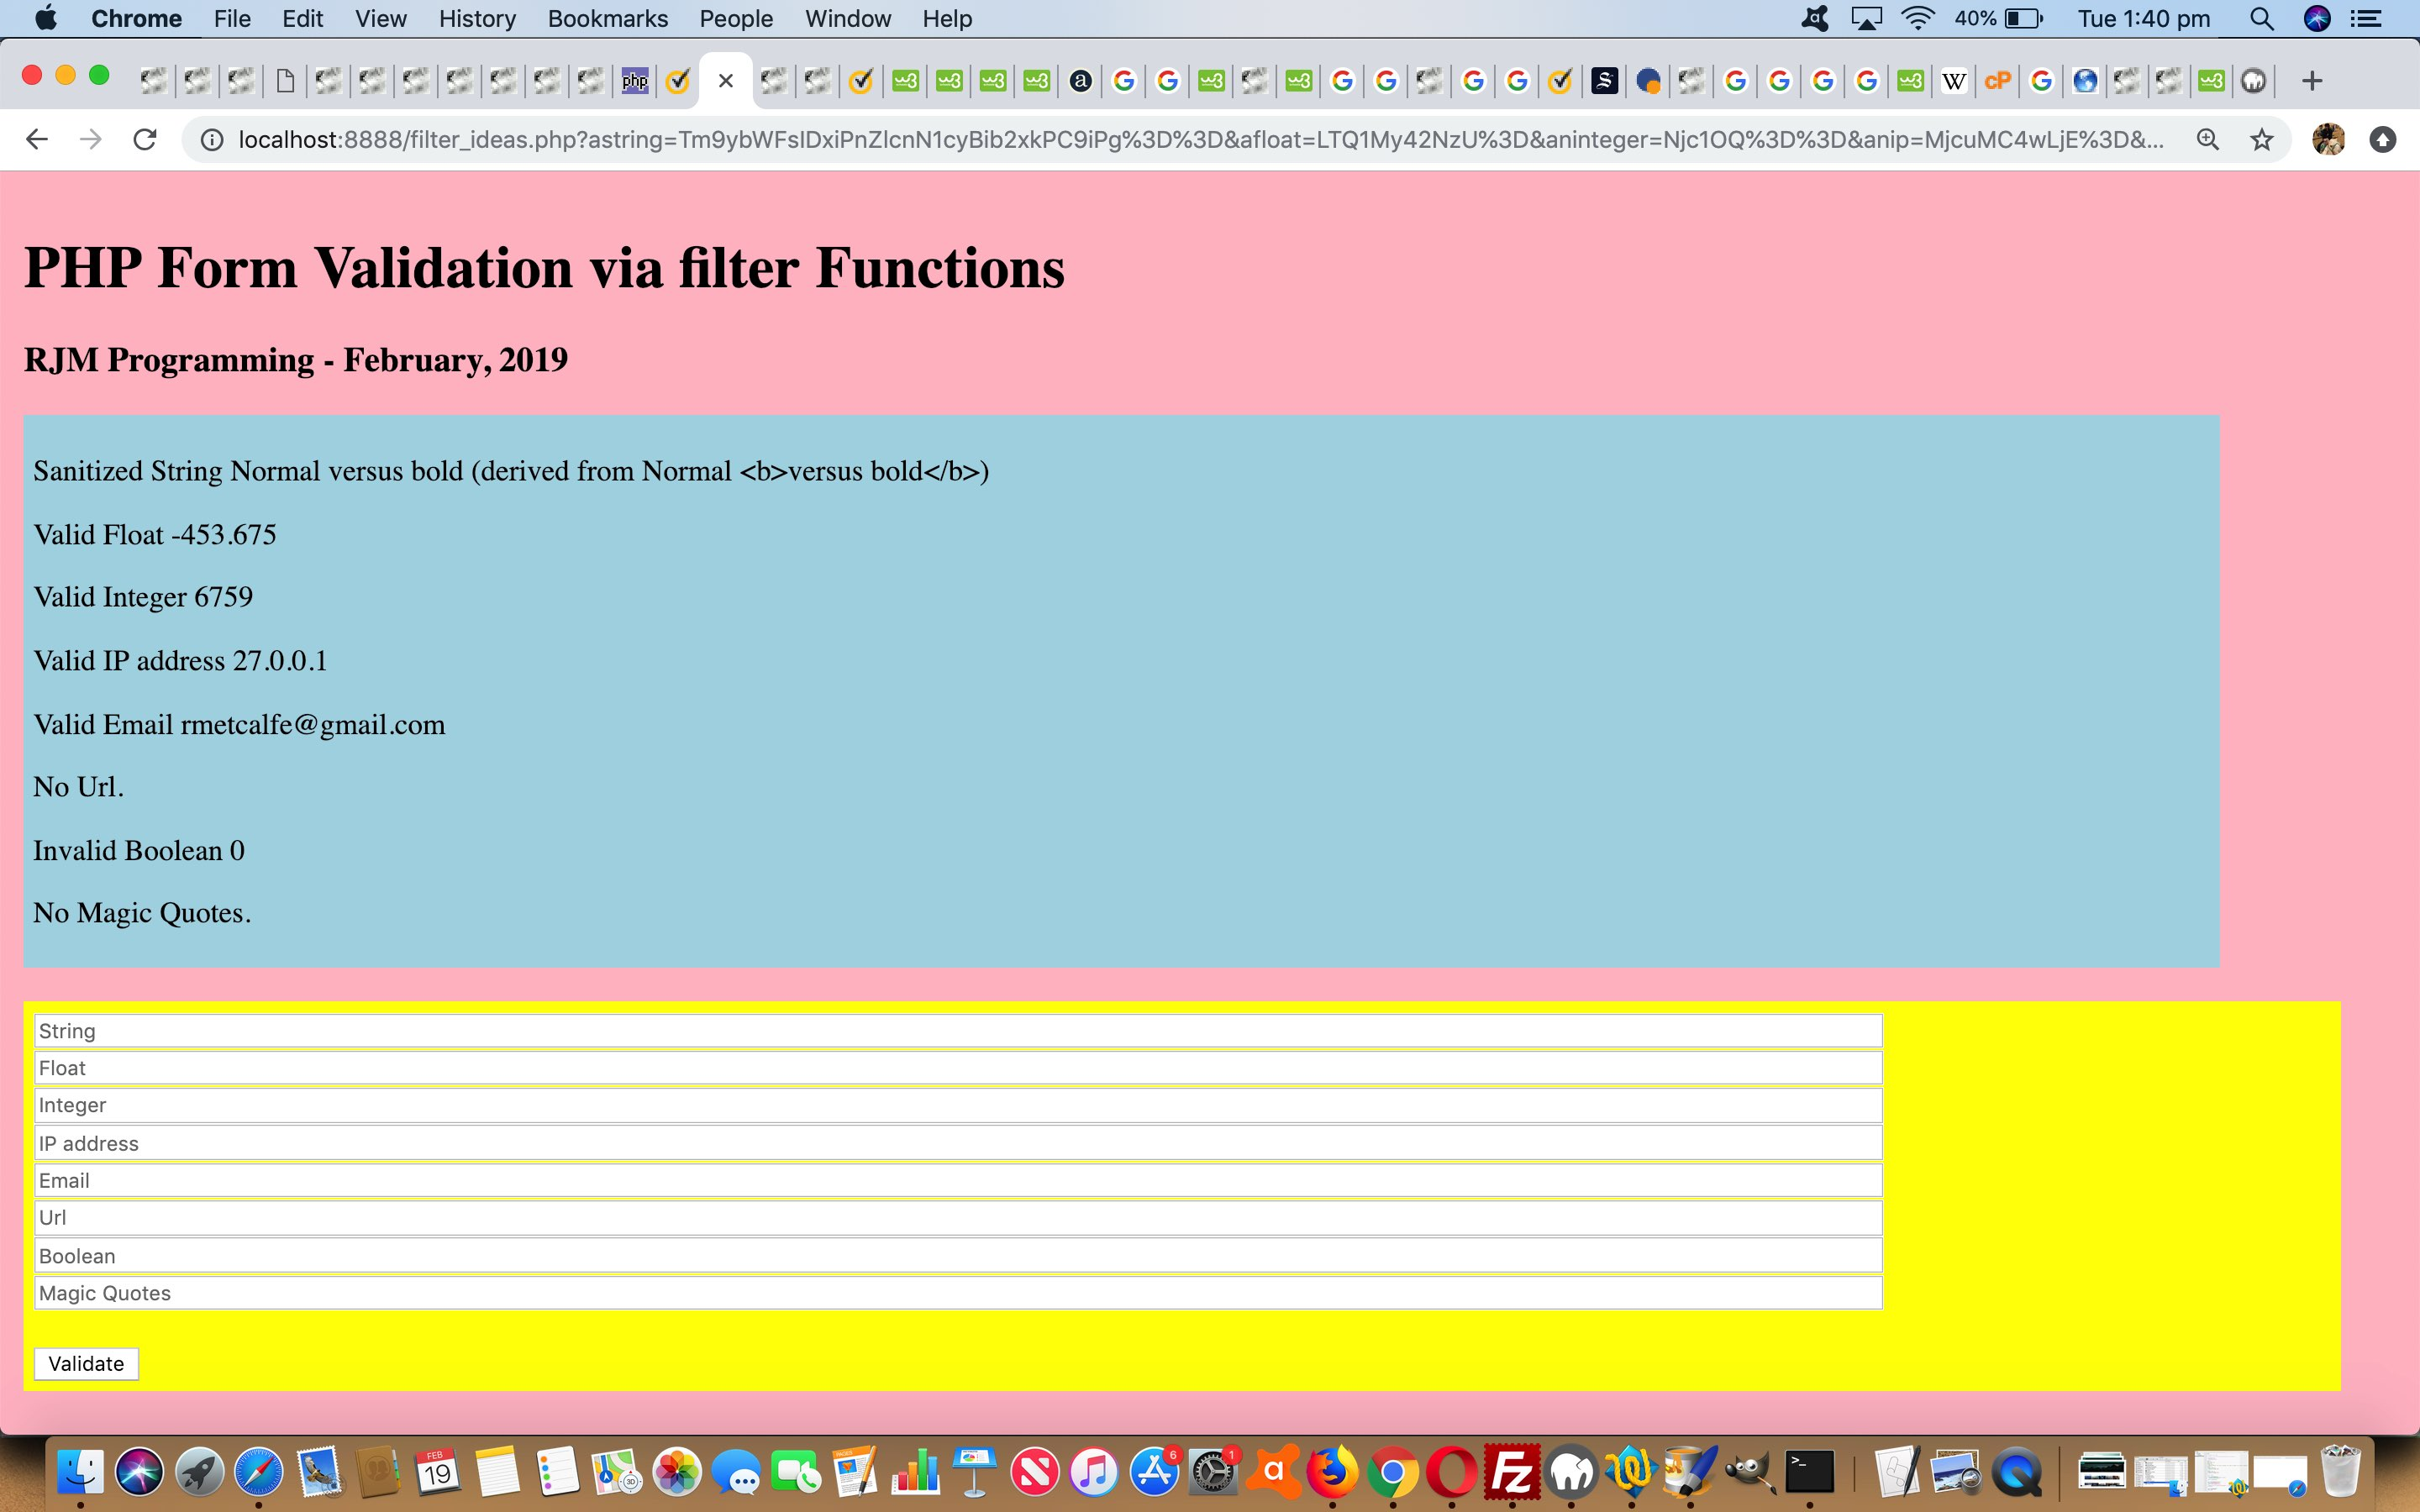 PHP Form Validation via Filter Extension Tutorial